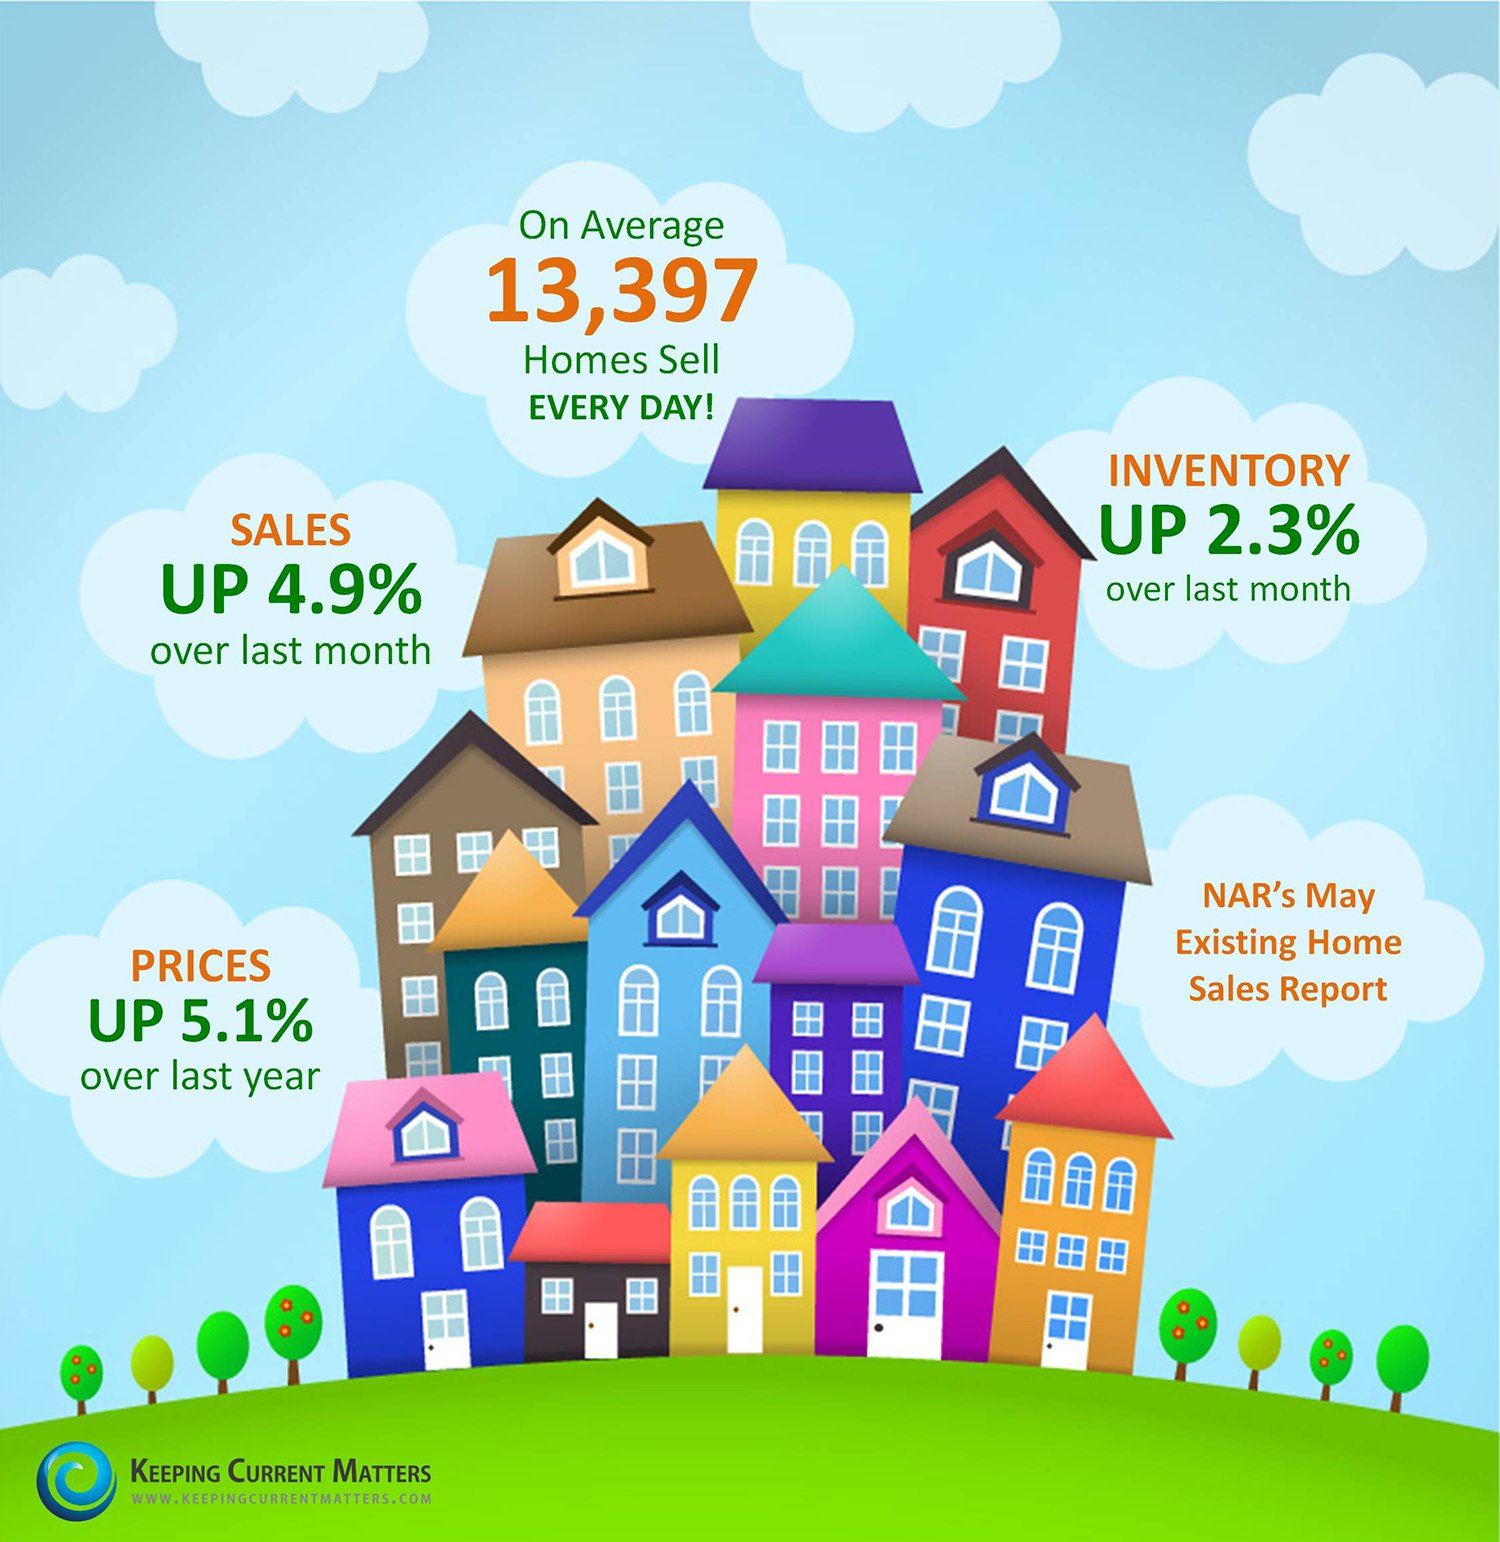 NAR's Existing Home Sales Report | Keeping Current Matters